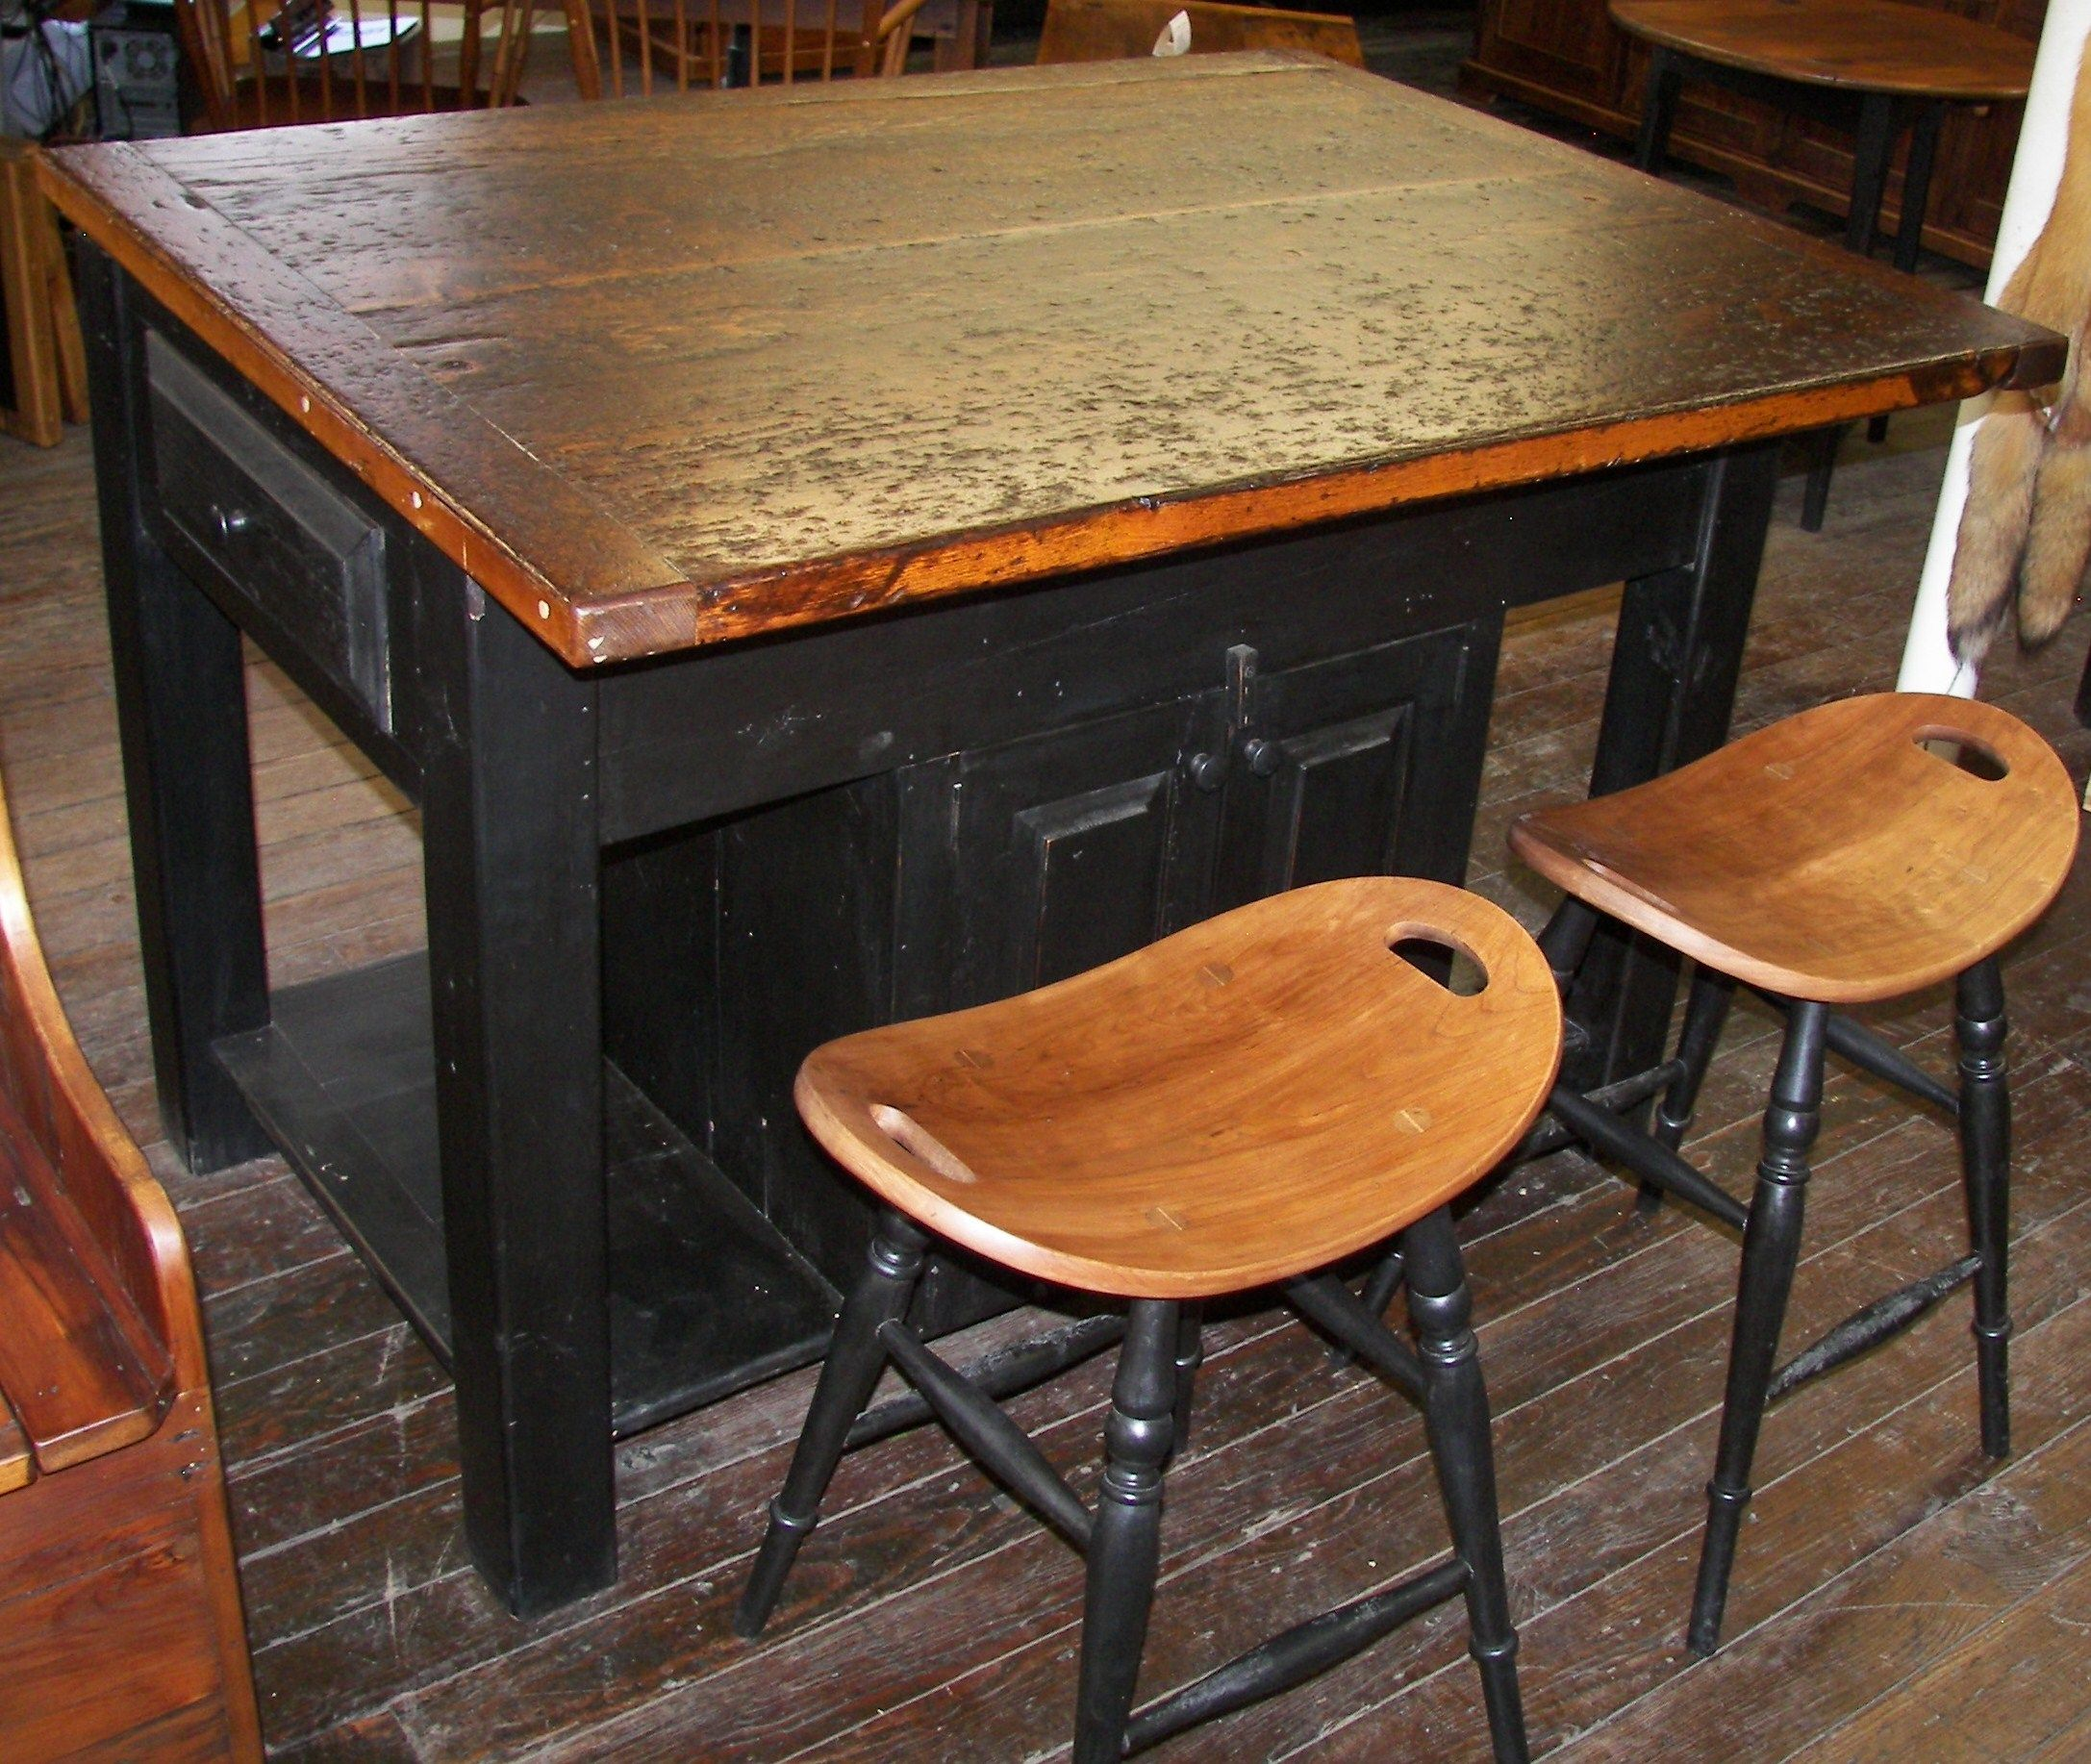 Reclaimed Barn Wood Furniture   Barn Wood Kitchen Island With Saddle Stools    Www.braunfarmtables